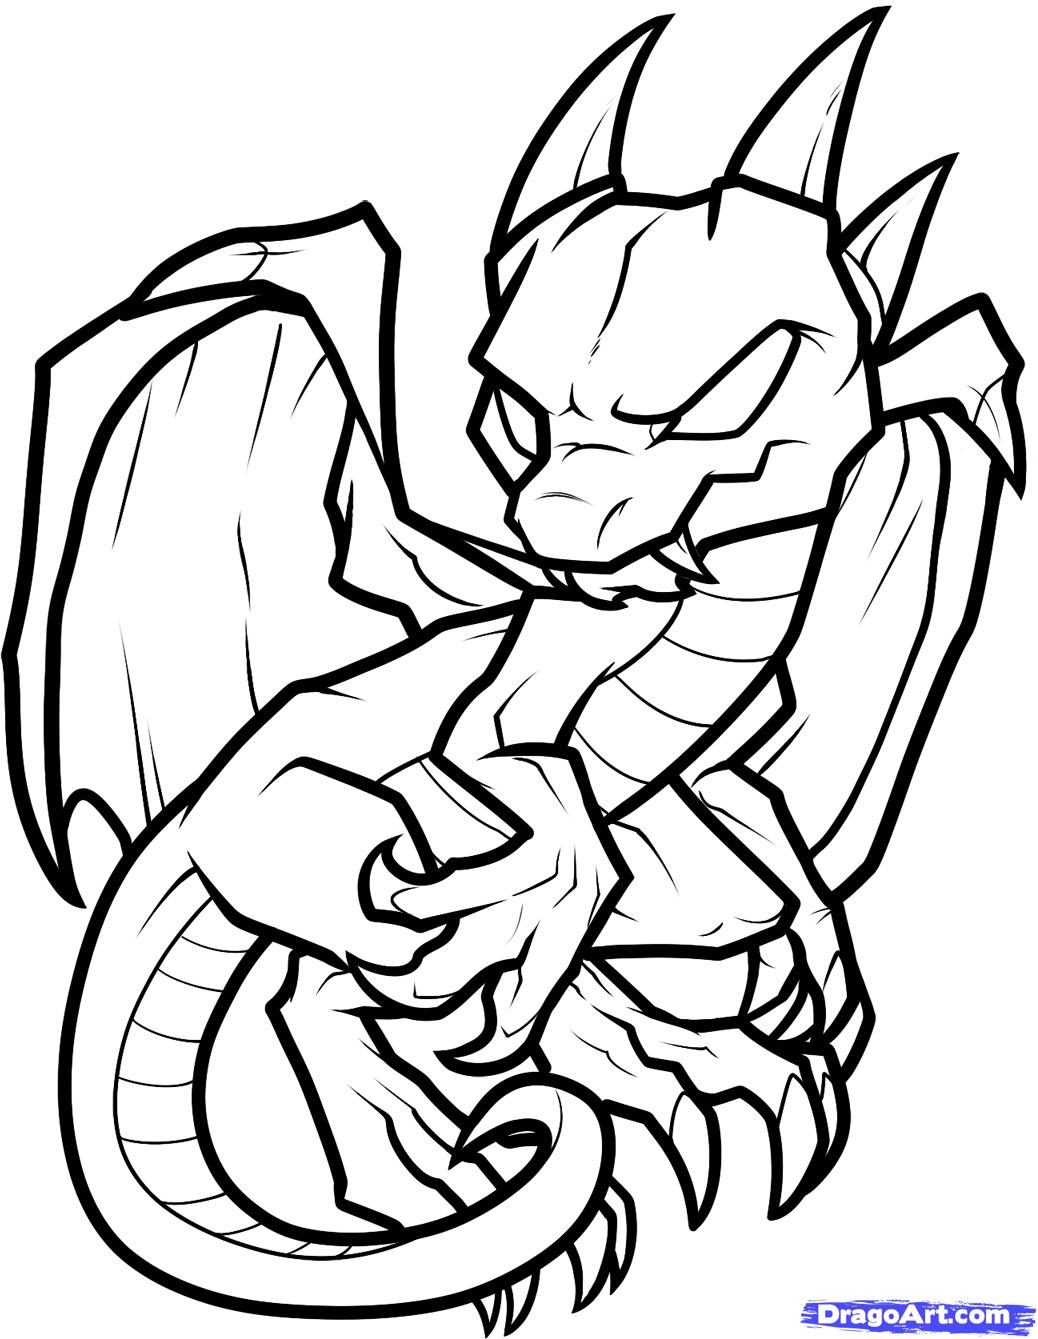 1038x1339 Coloring Pages Engaging Coloring Pages Draw A Simple Dragon